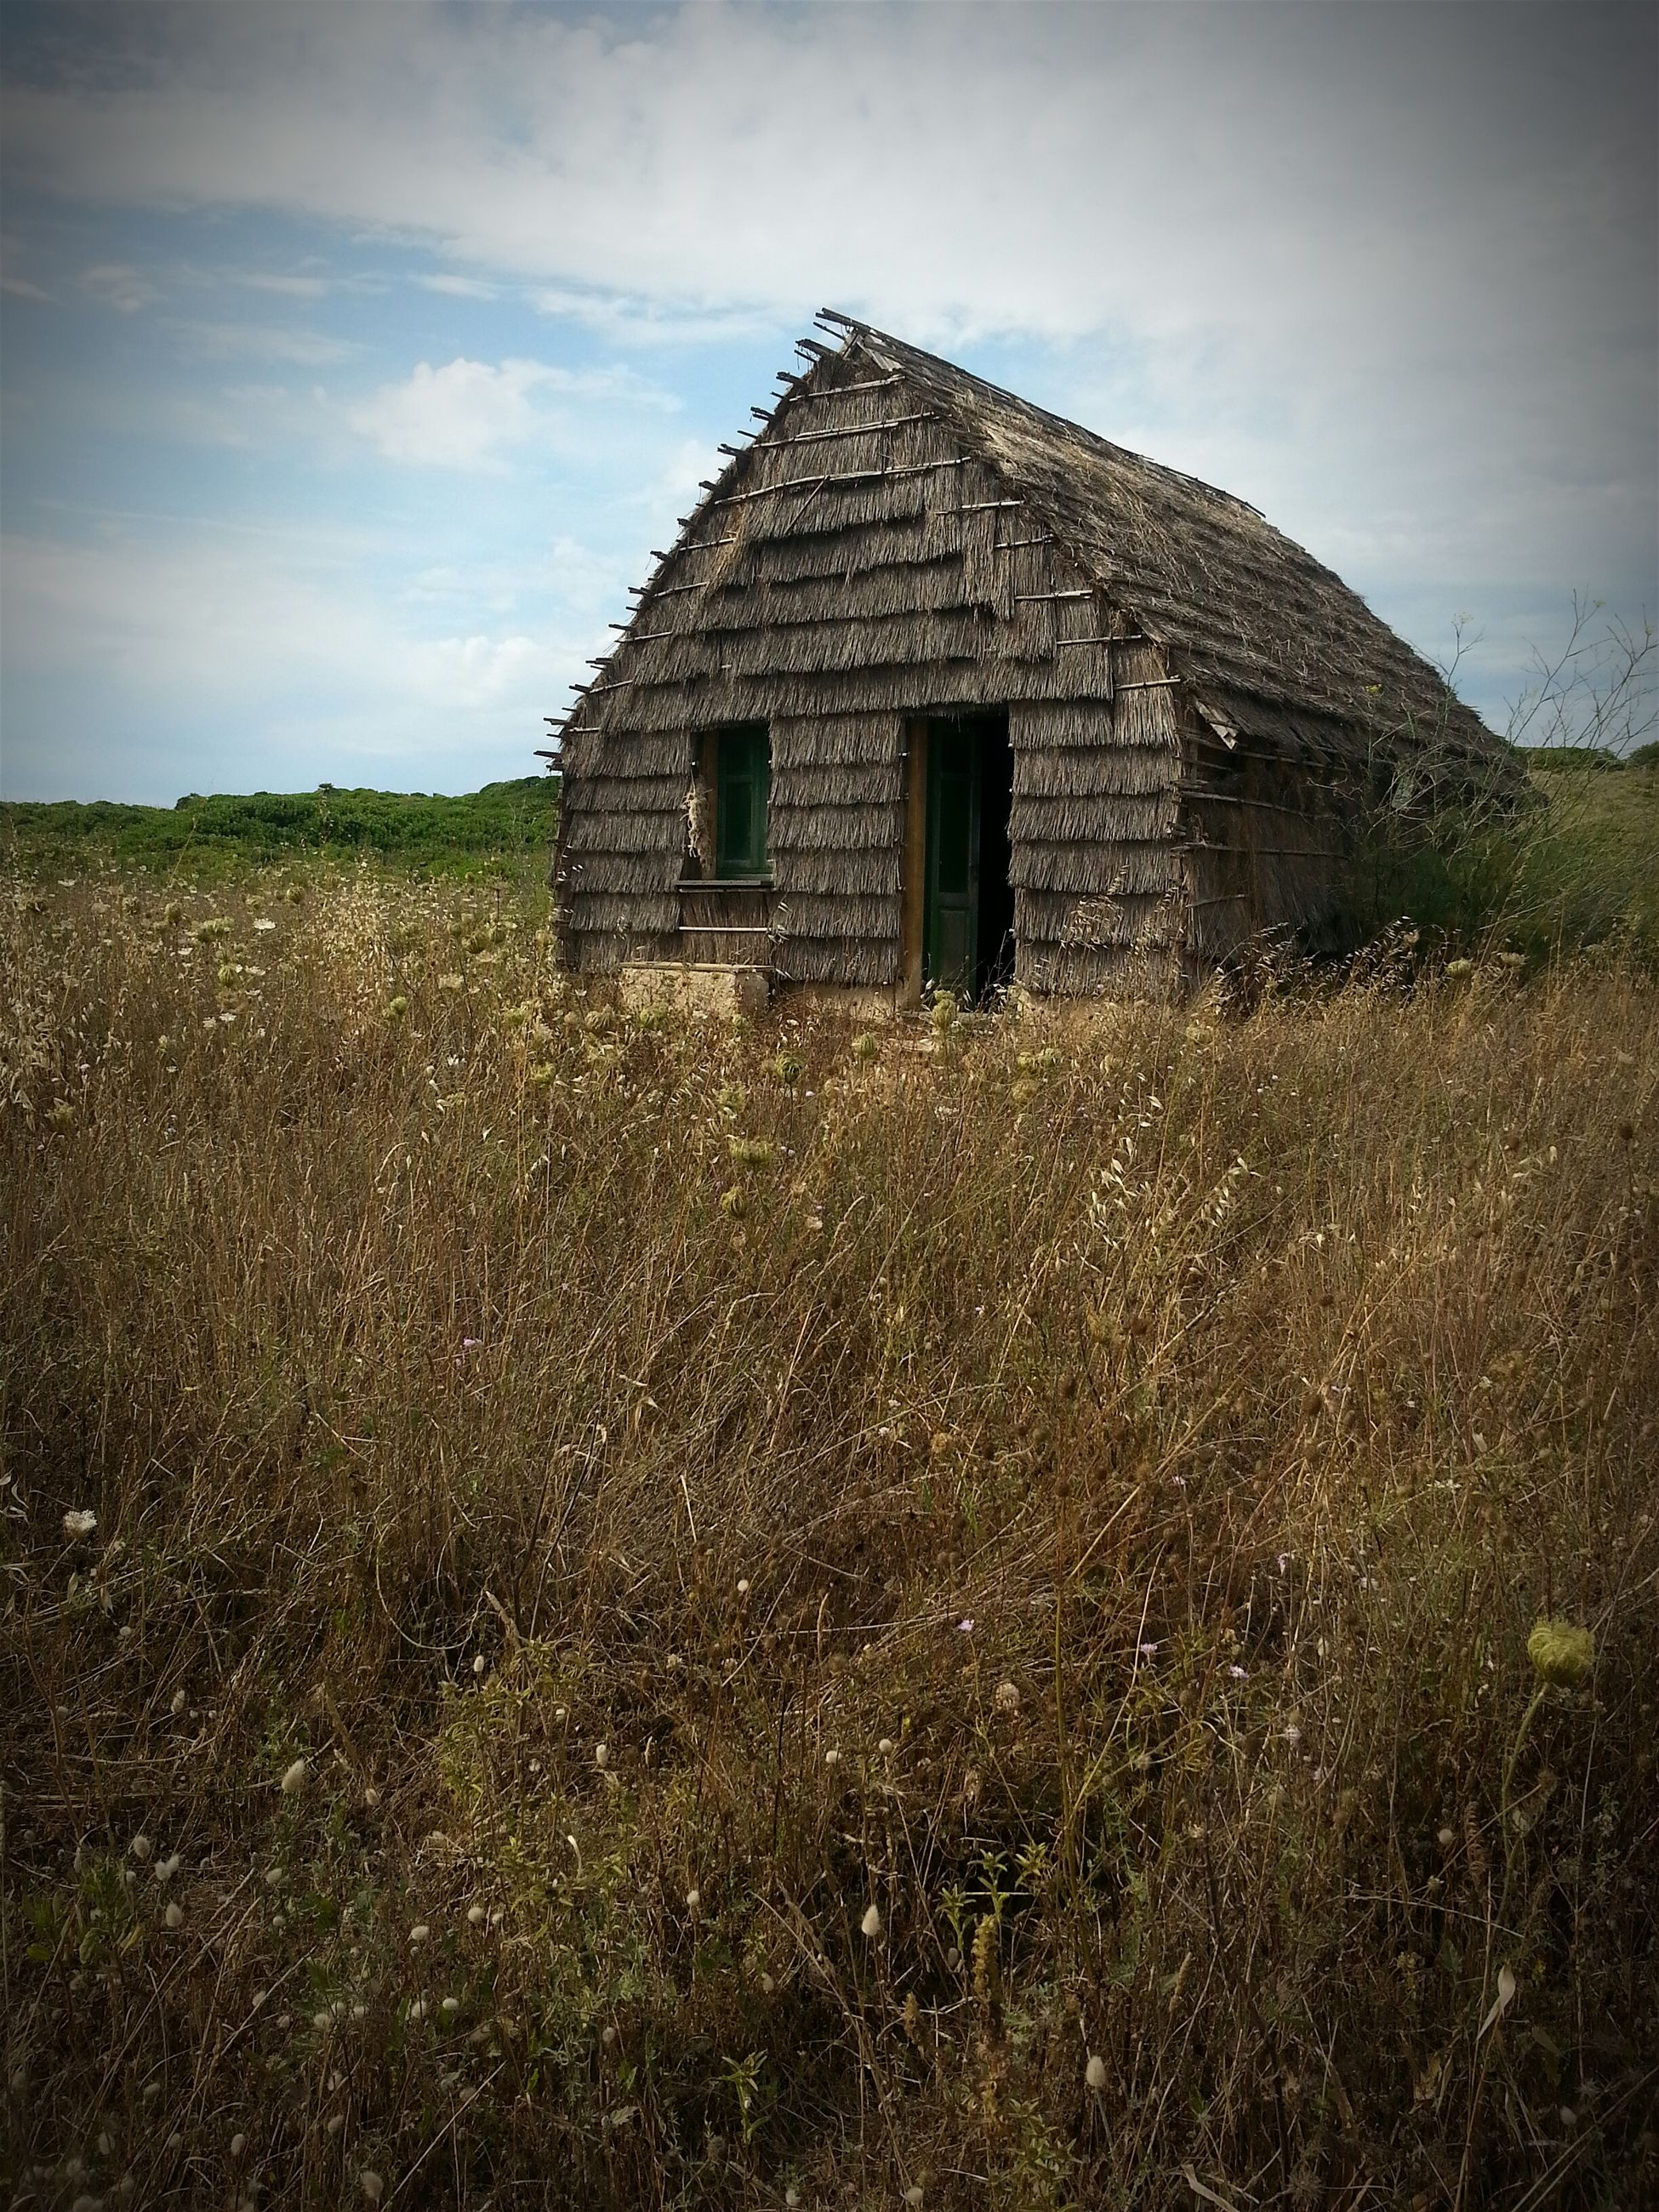 built structure, architecture, building exterior, sky, grass, house, field, cloud - sky, landscape, abandoned, cloud, day, nature, rural scene, plant, stone wall, window, old, no people, outdoors